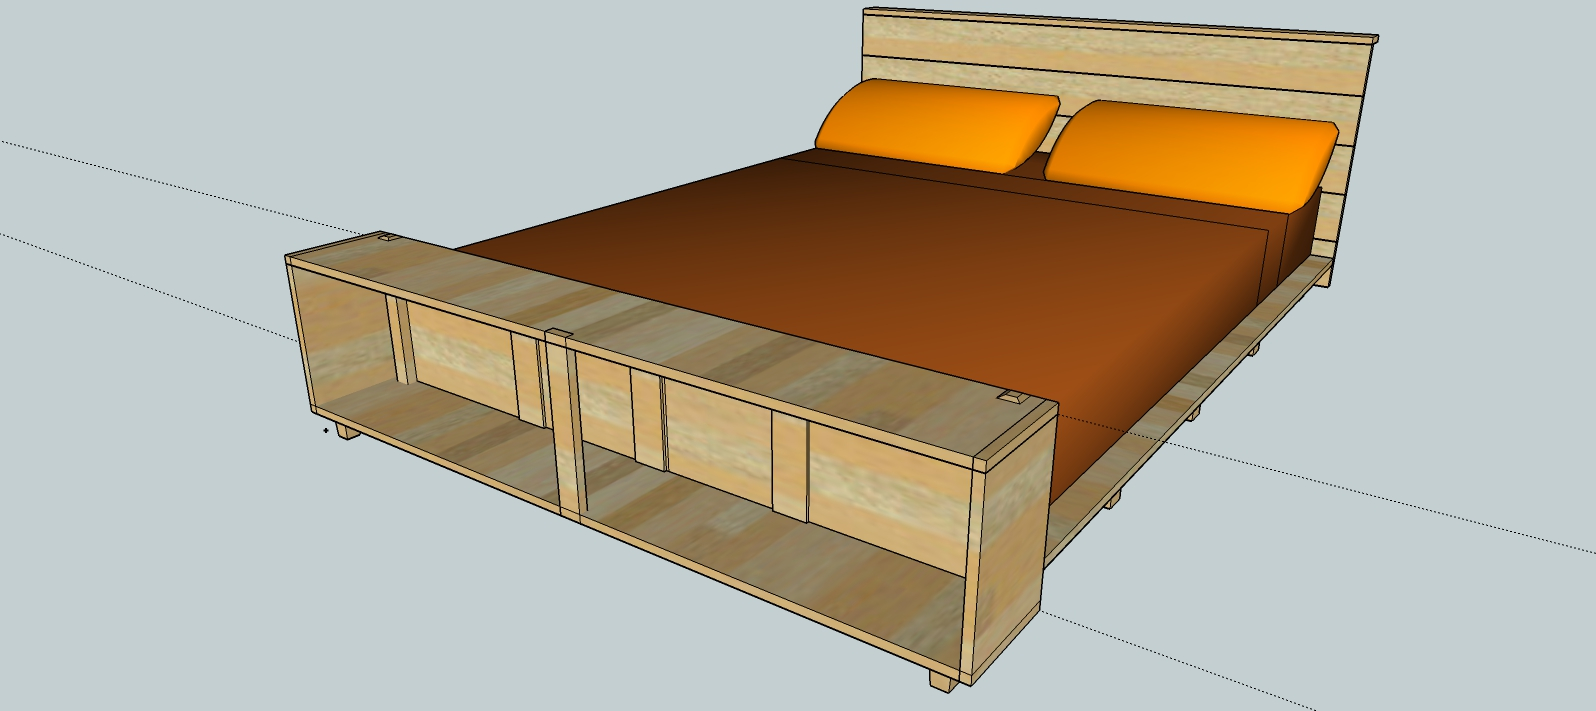 3d Bed Drawing at GetDrawings com | Free for personal use 3d Bed